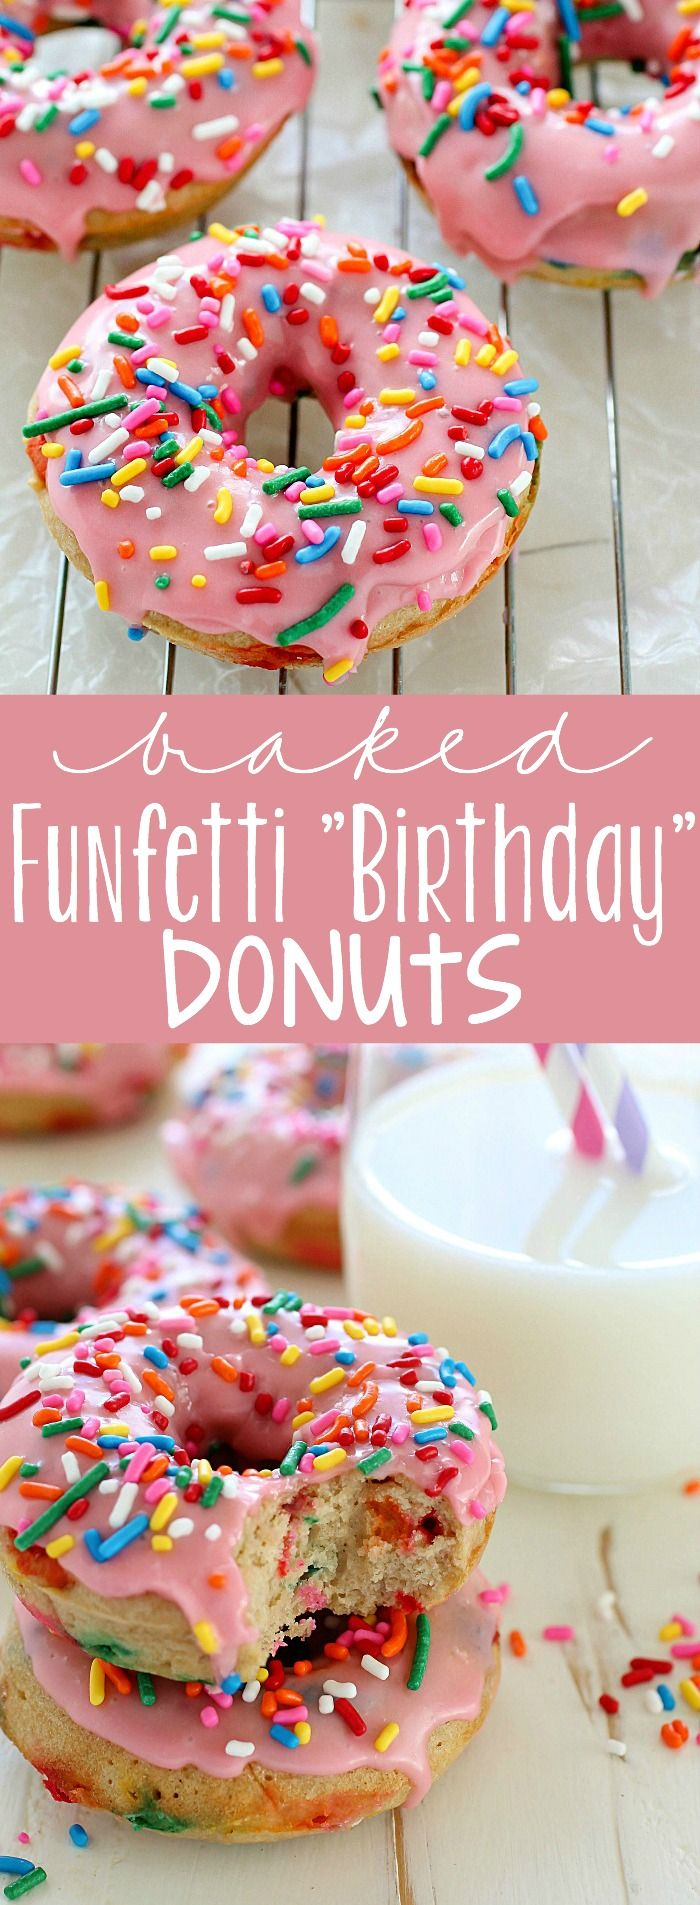 Baked Funfetti Donuts aka Birthday Donuts! These homemade donuts are made with healthier ingredients and baked. Topped with an easy glaze and funfetti sprinkles! Every bite has funfetti sprinkles!